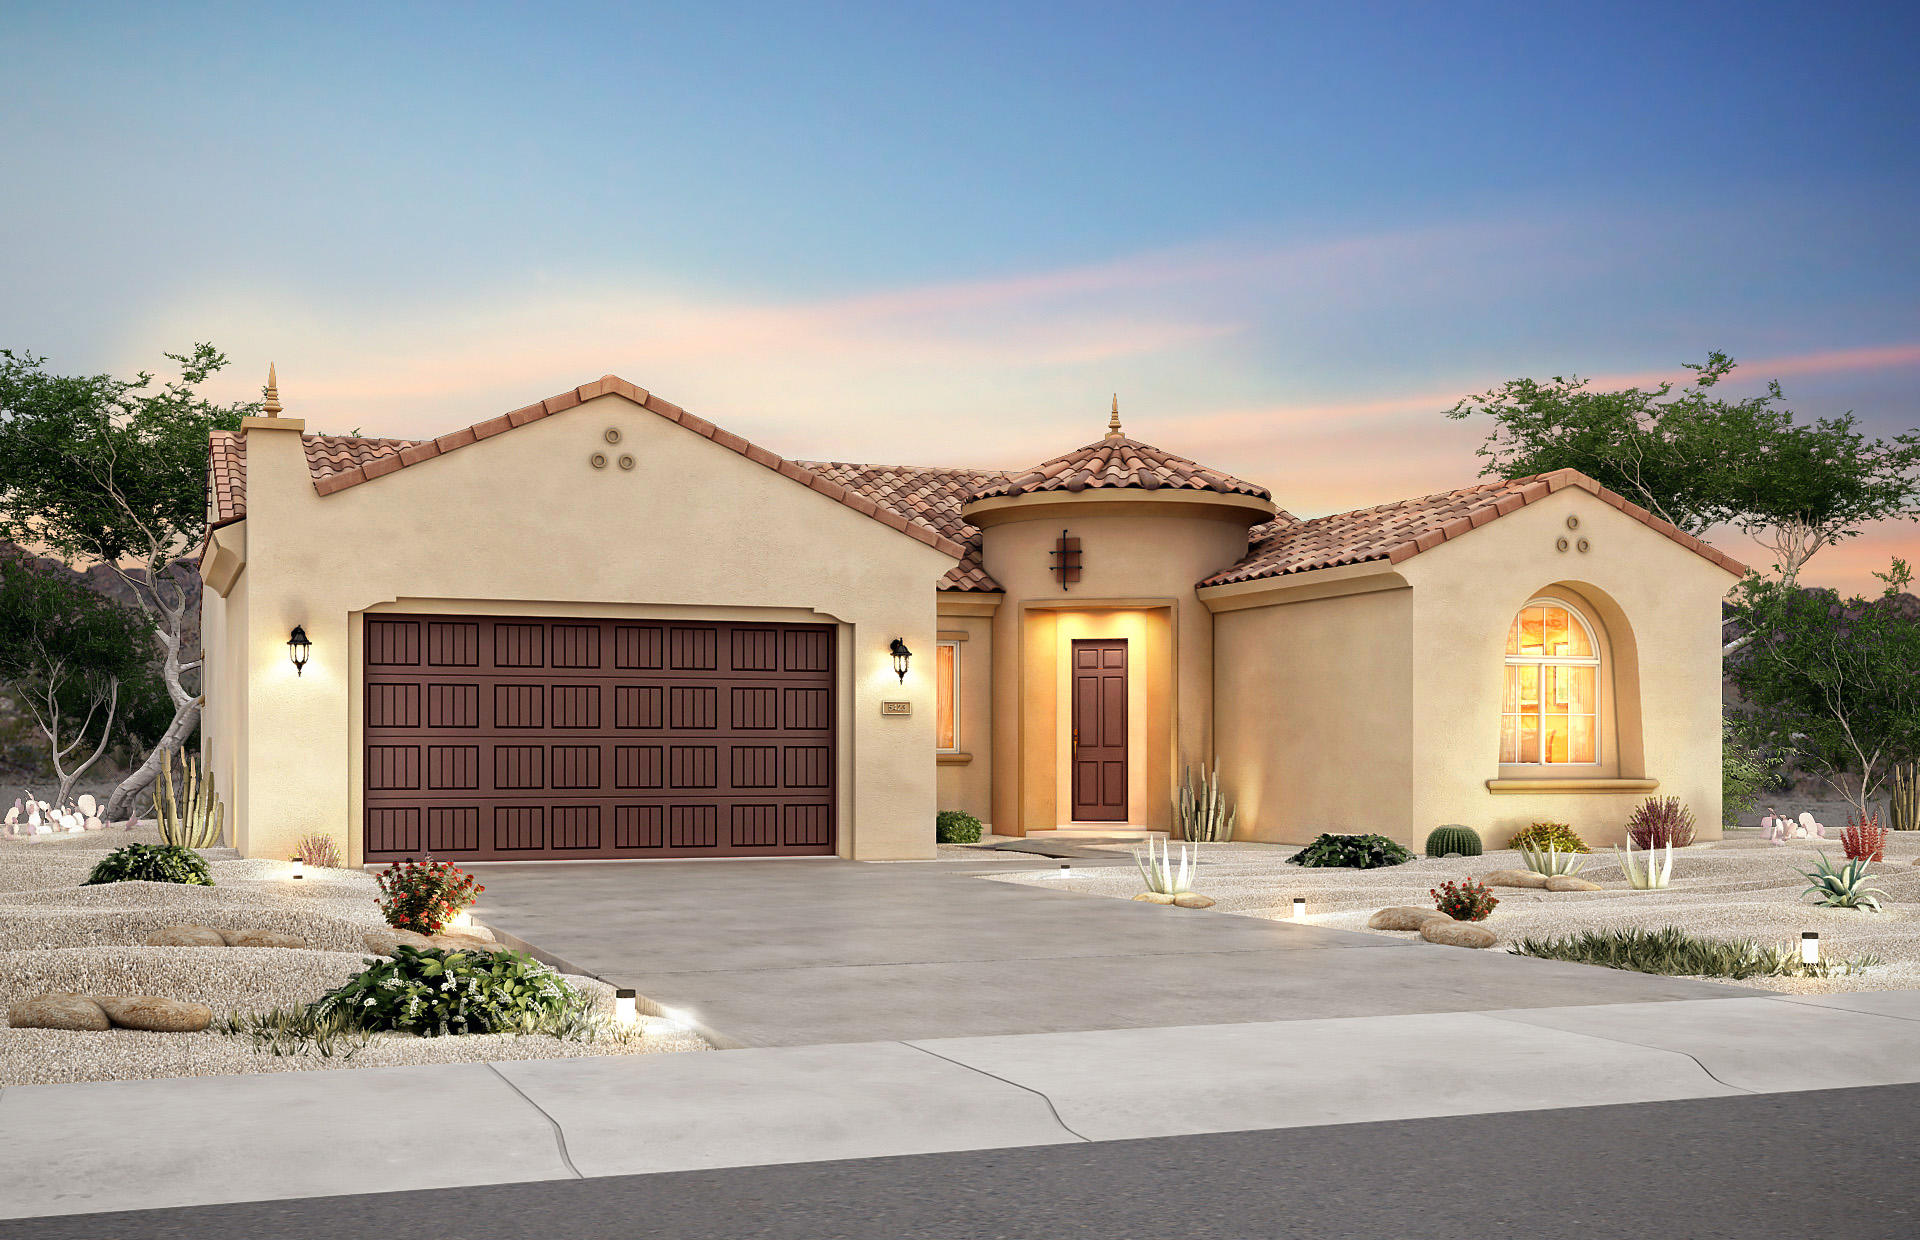 Enjoy resort-style living in Albuquerque's premier    55+ active adult gated community! Amenities include an 11,000 square foot amenity center featuring state of the art fitness center, junior Olympic size pool, movement studio, pickleball courts, tennis court, and social areas.  Brand new never lived in green built home includes  2x6 construction, brand new stainless steel appliances,  tile, new carpet, new A/C, new tank-less water heater, and so much more!